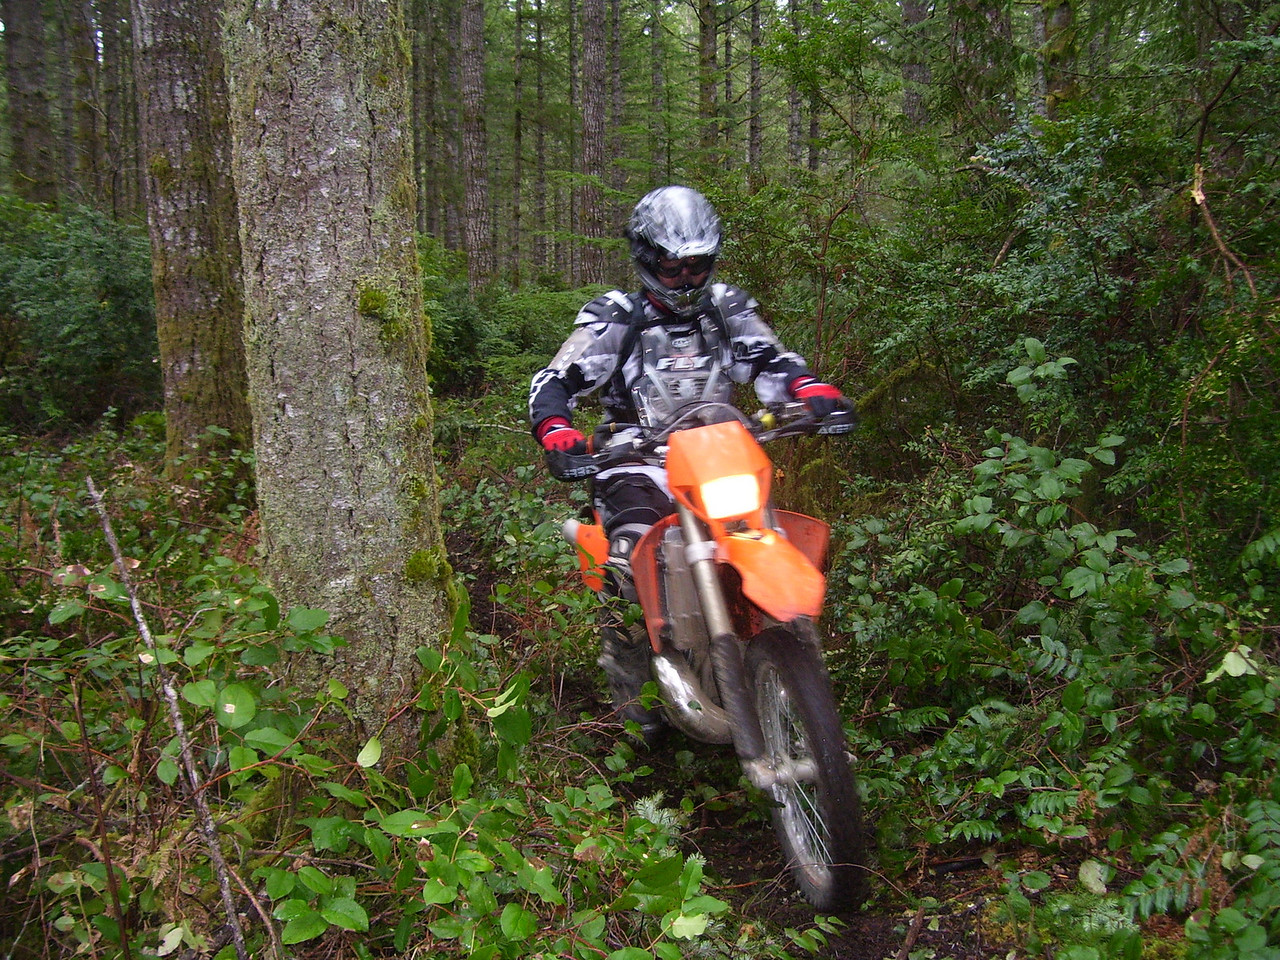 Marc on a KTM 300 EXC.